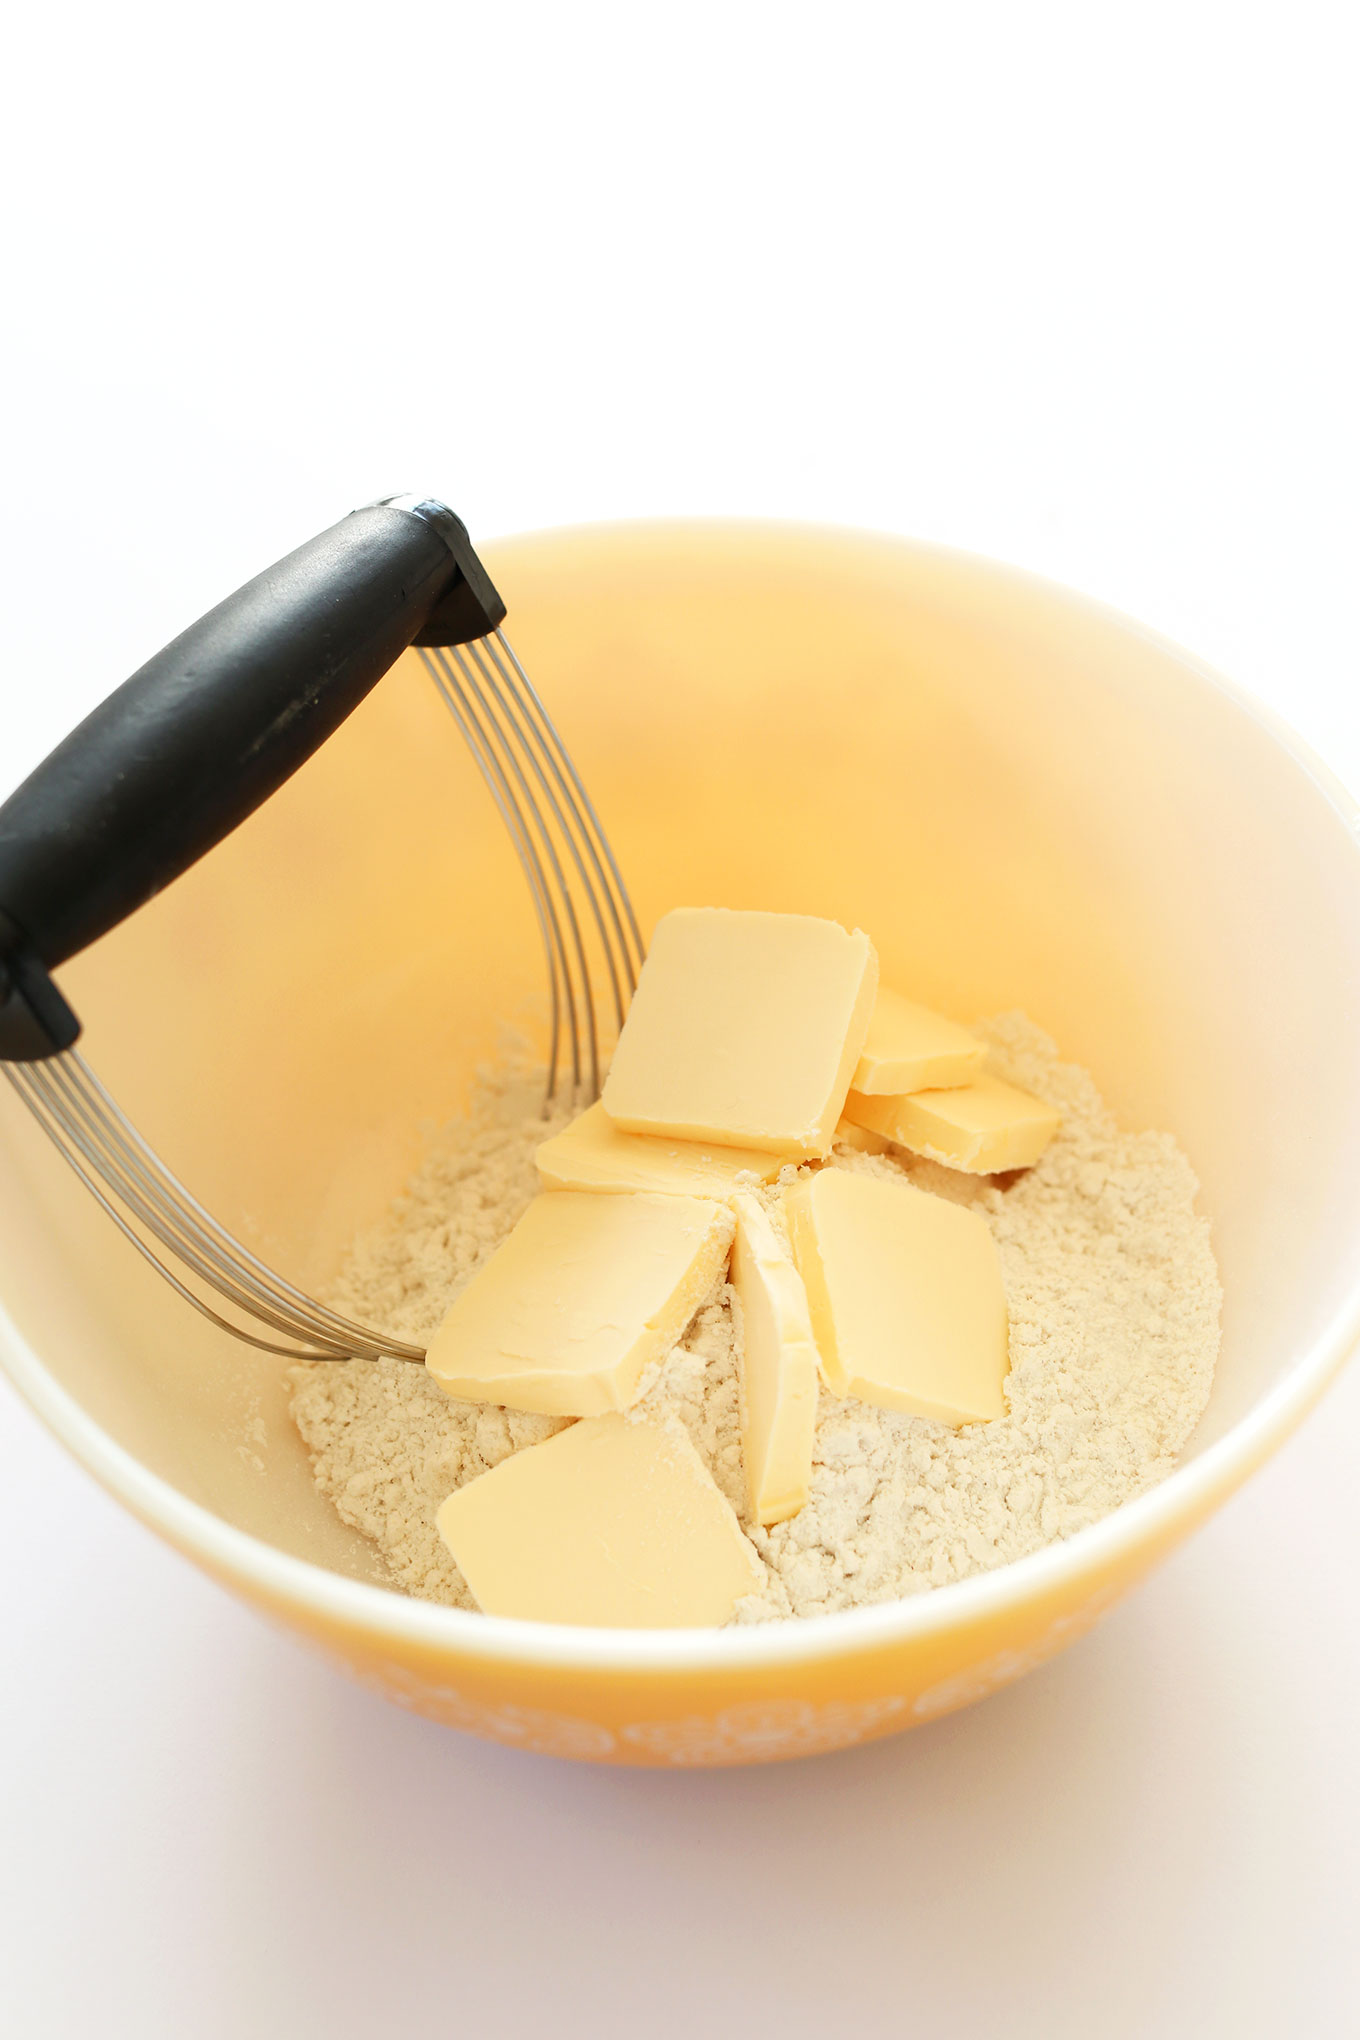 Using a pastry cutter to cut vegan butter into gluten-free flour